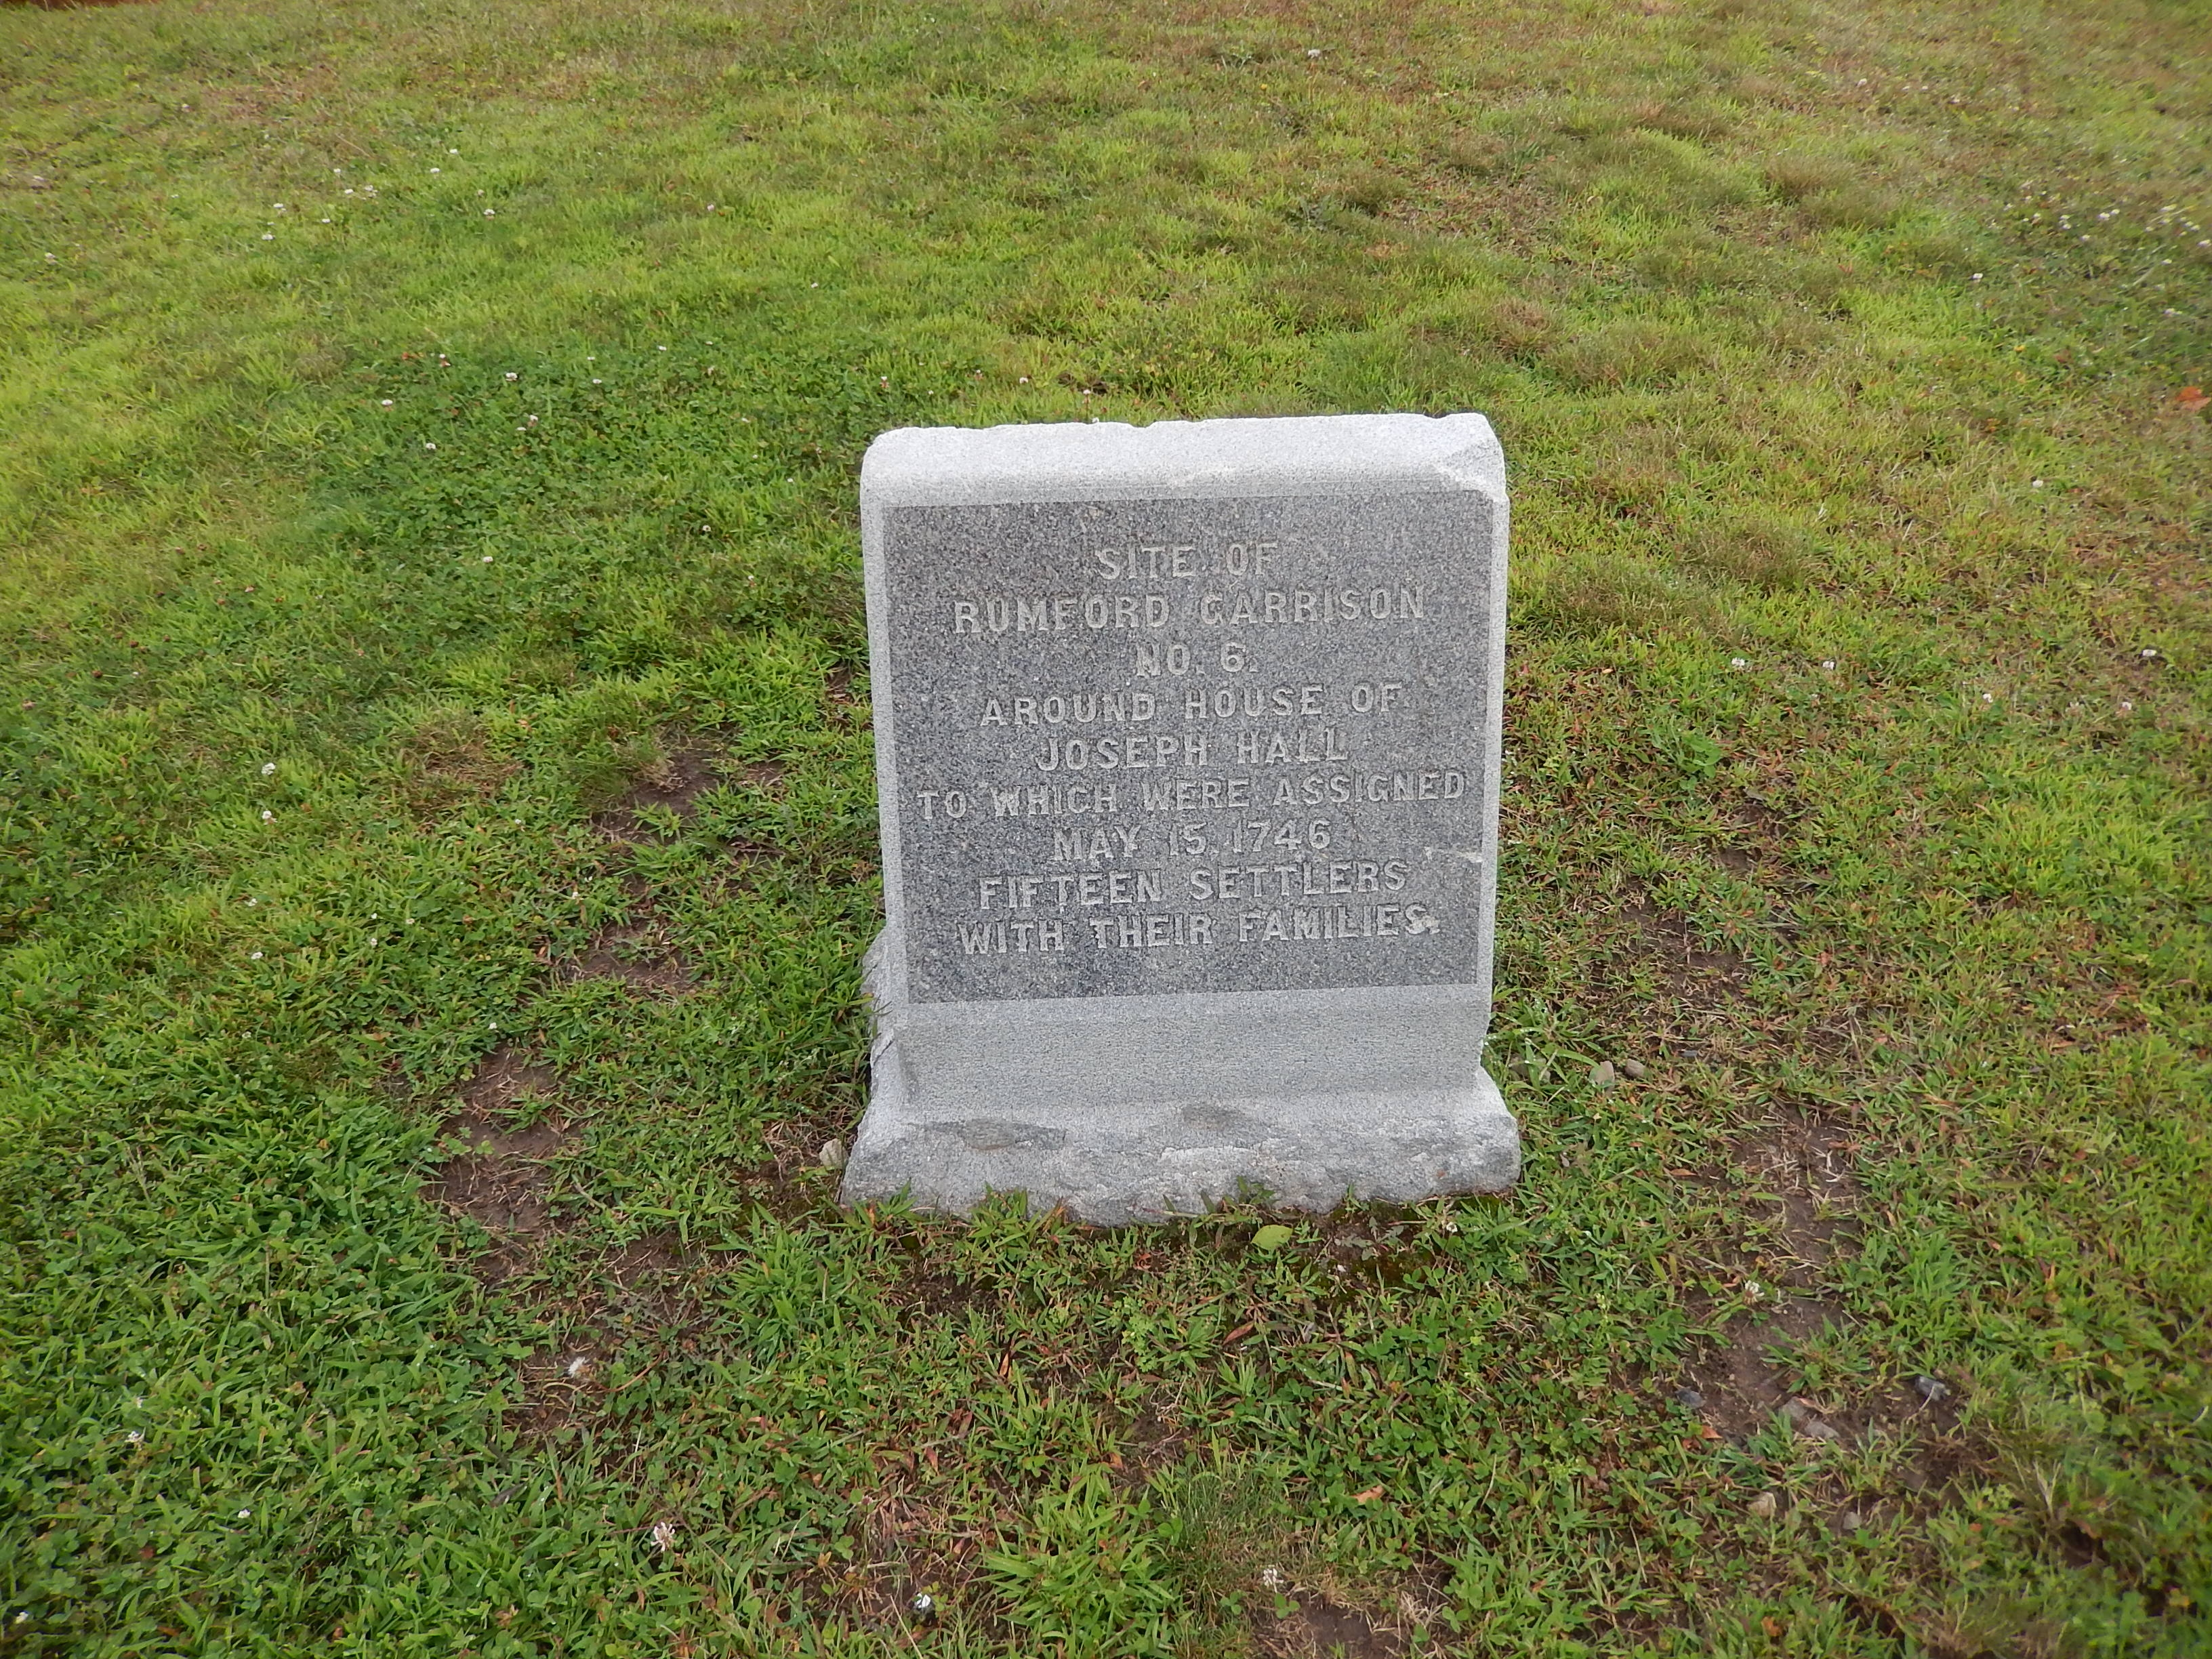 Site of Rumford Garrison No. 6 Marker